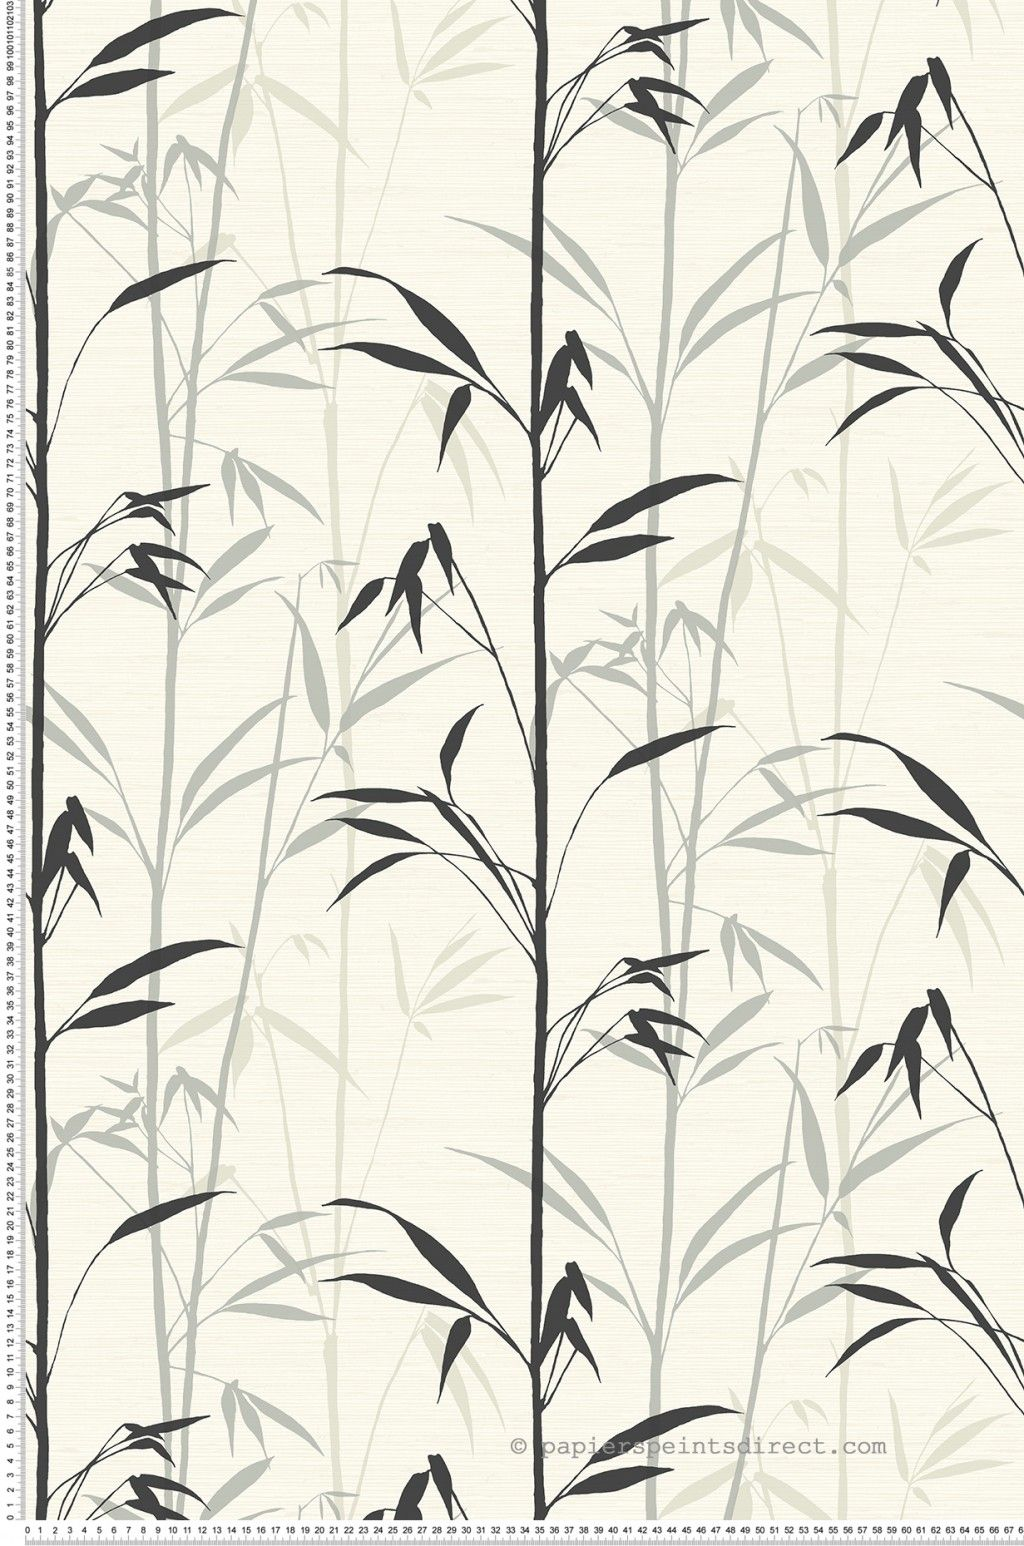 Branches de bambou blanc- Collection Chinoiserie dInitiales